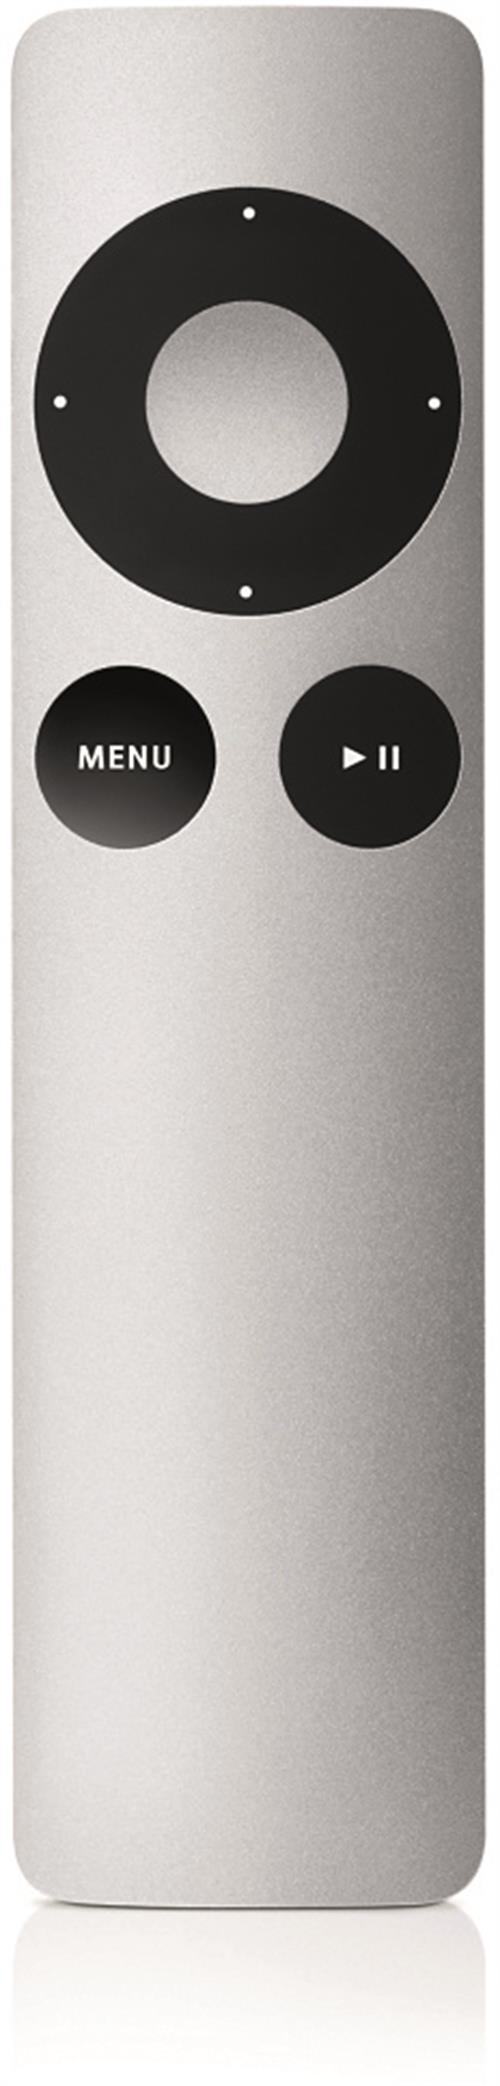 Apple Remote, fjärrkontroll till iPod/iPhone/Apple TV/Mac, silver, i kartong